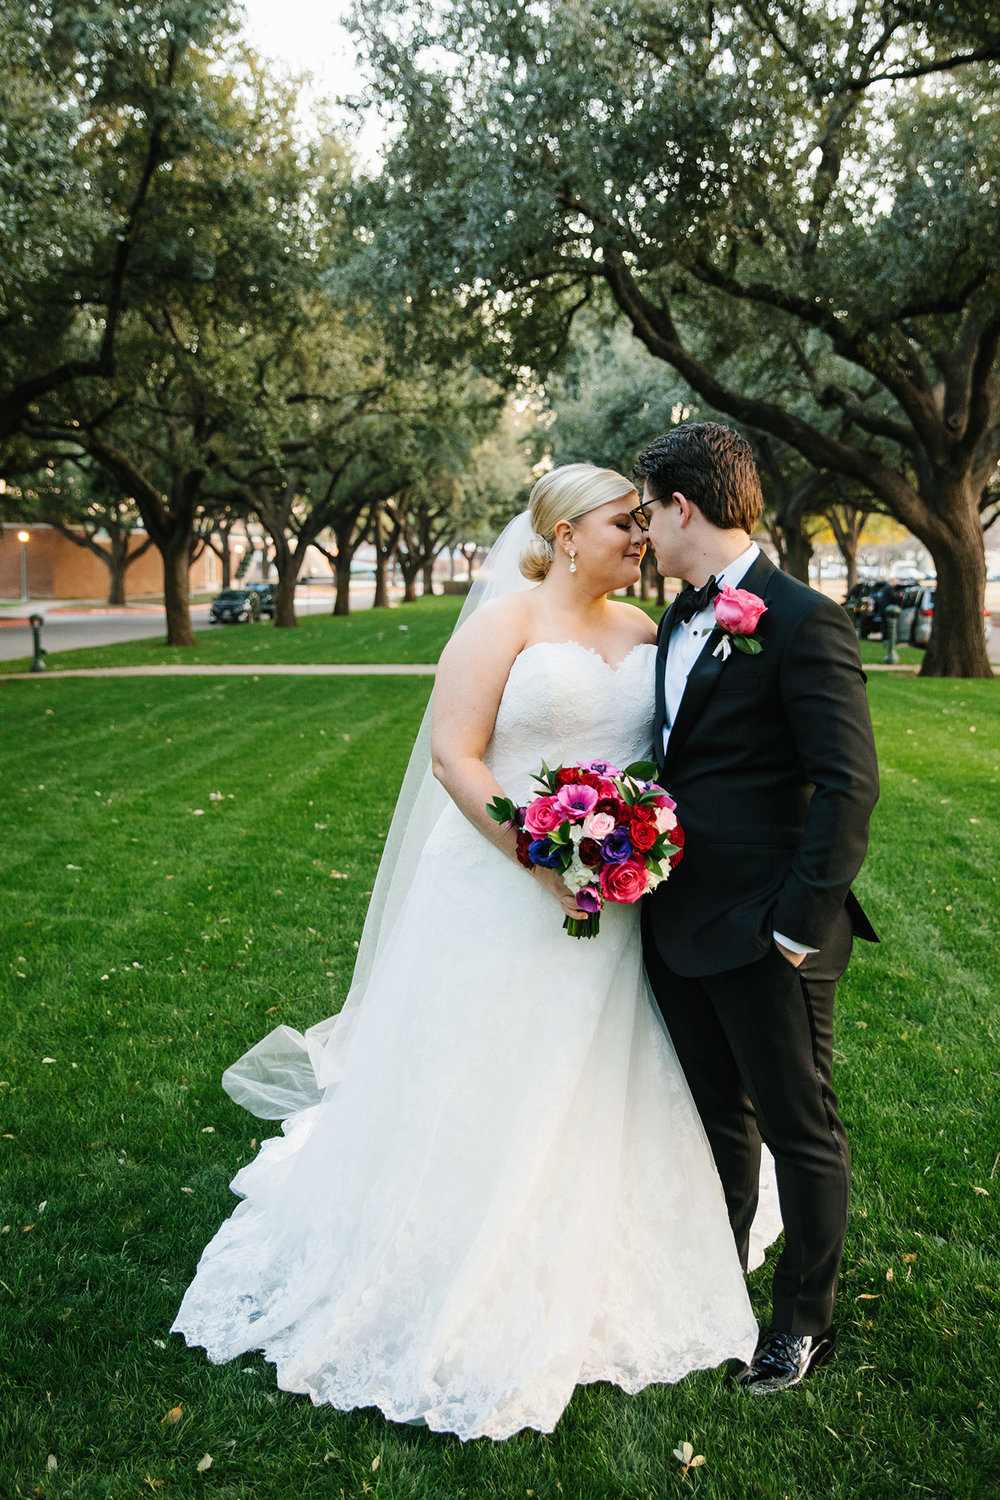 Dallas Weddings Planner - Allday Events - Katie + Matthew at The Adolphus Hotel - 473.jpg